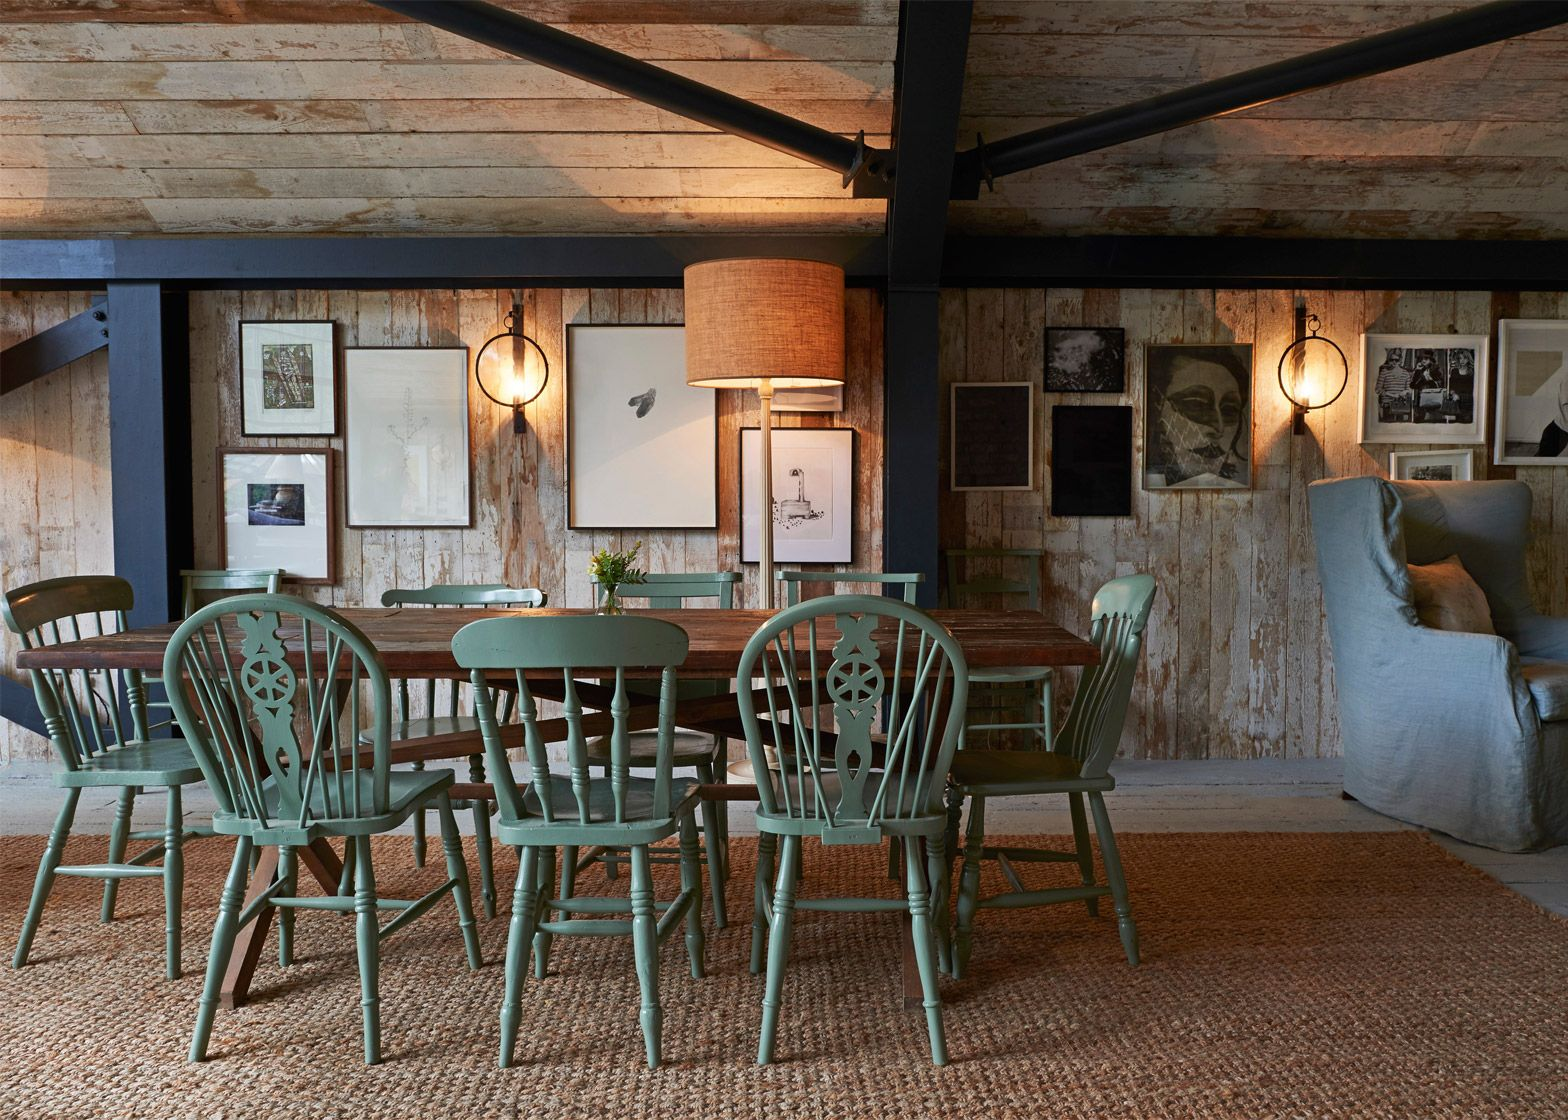 Soho House And Michaelis Boyd Turn Farm Into Luxury Members Hotel